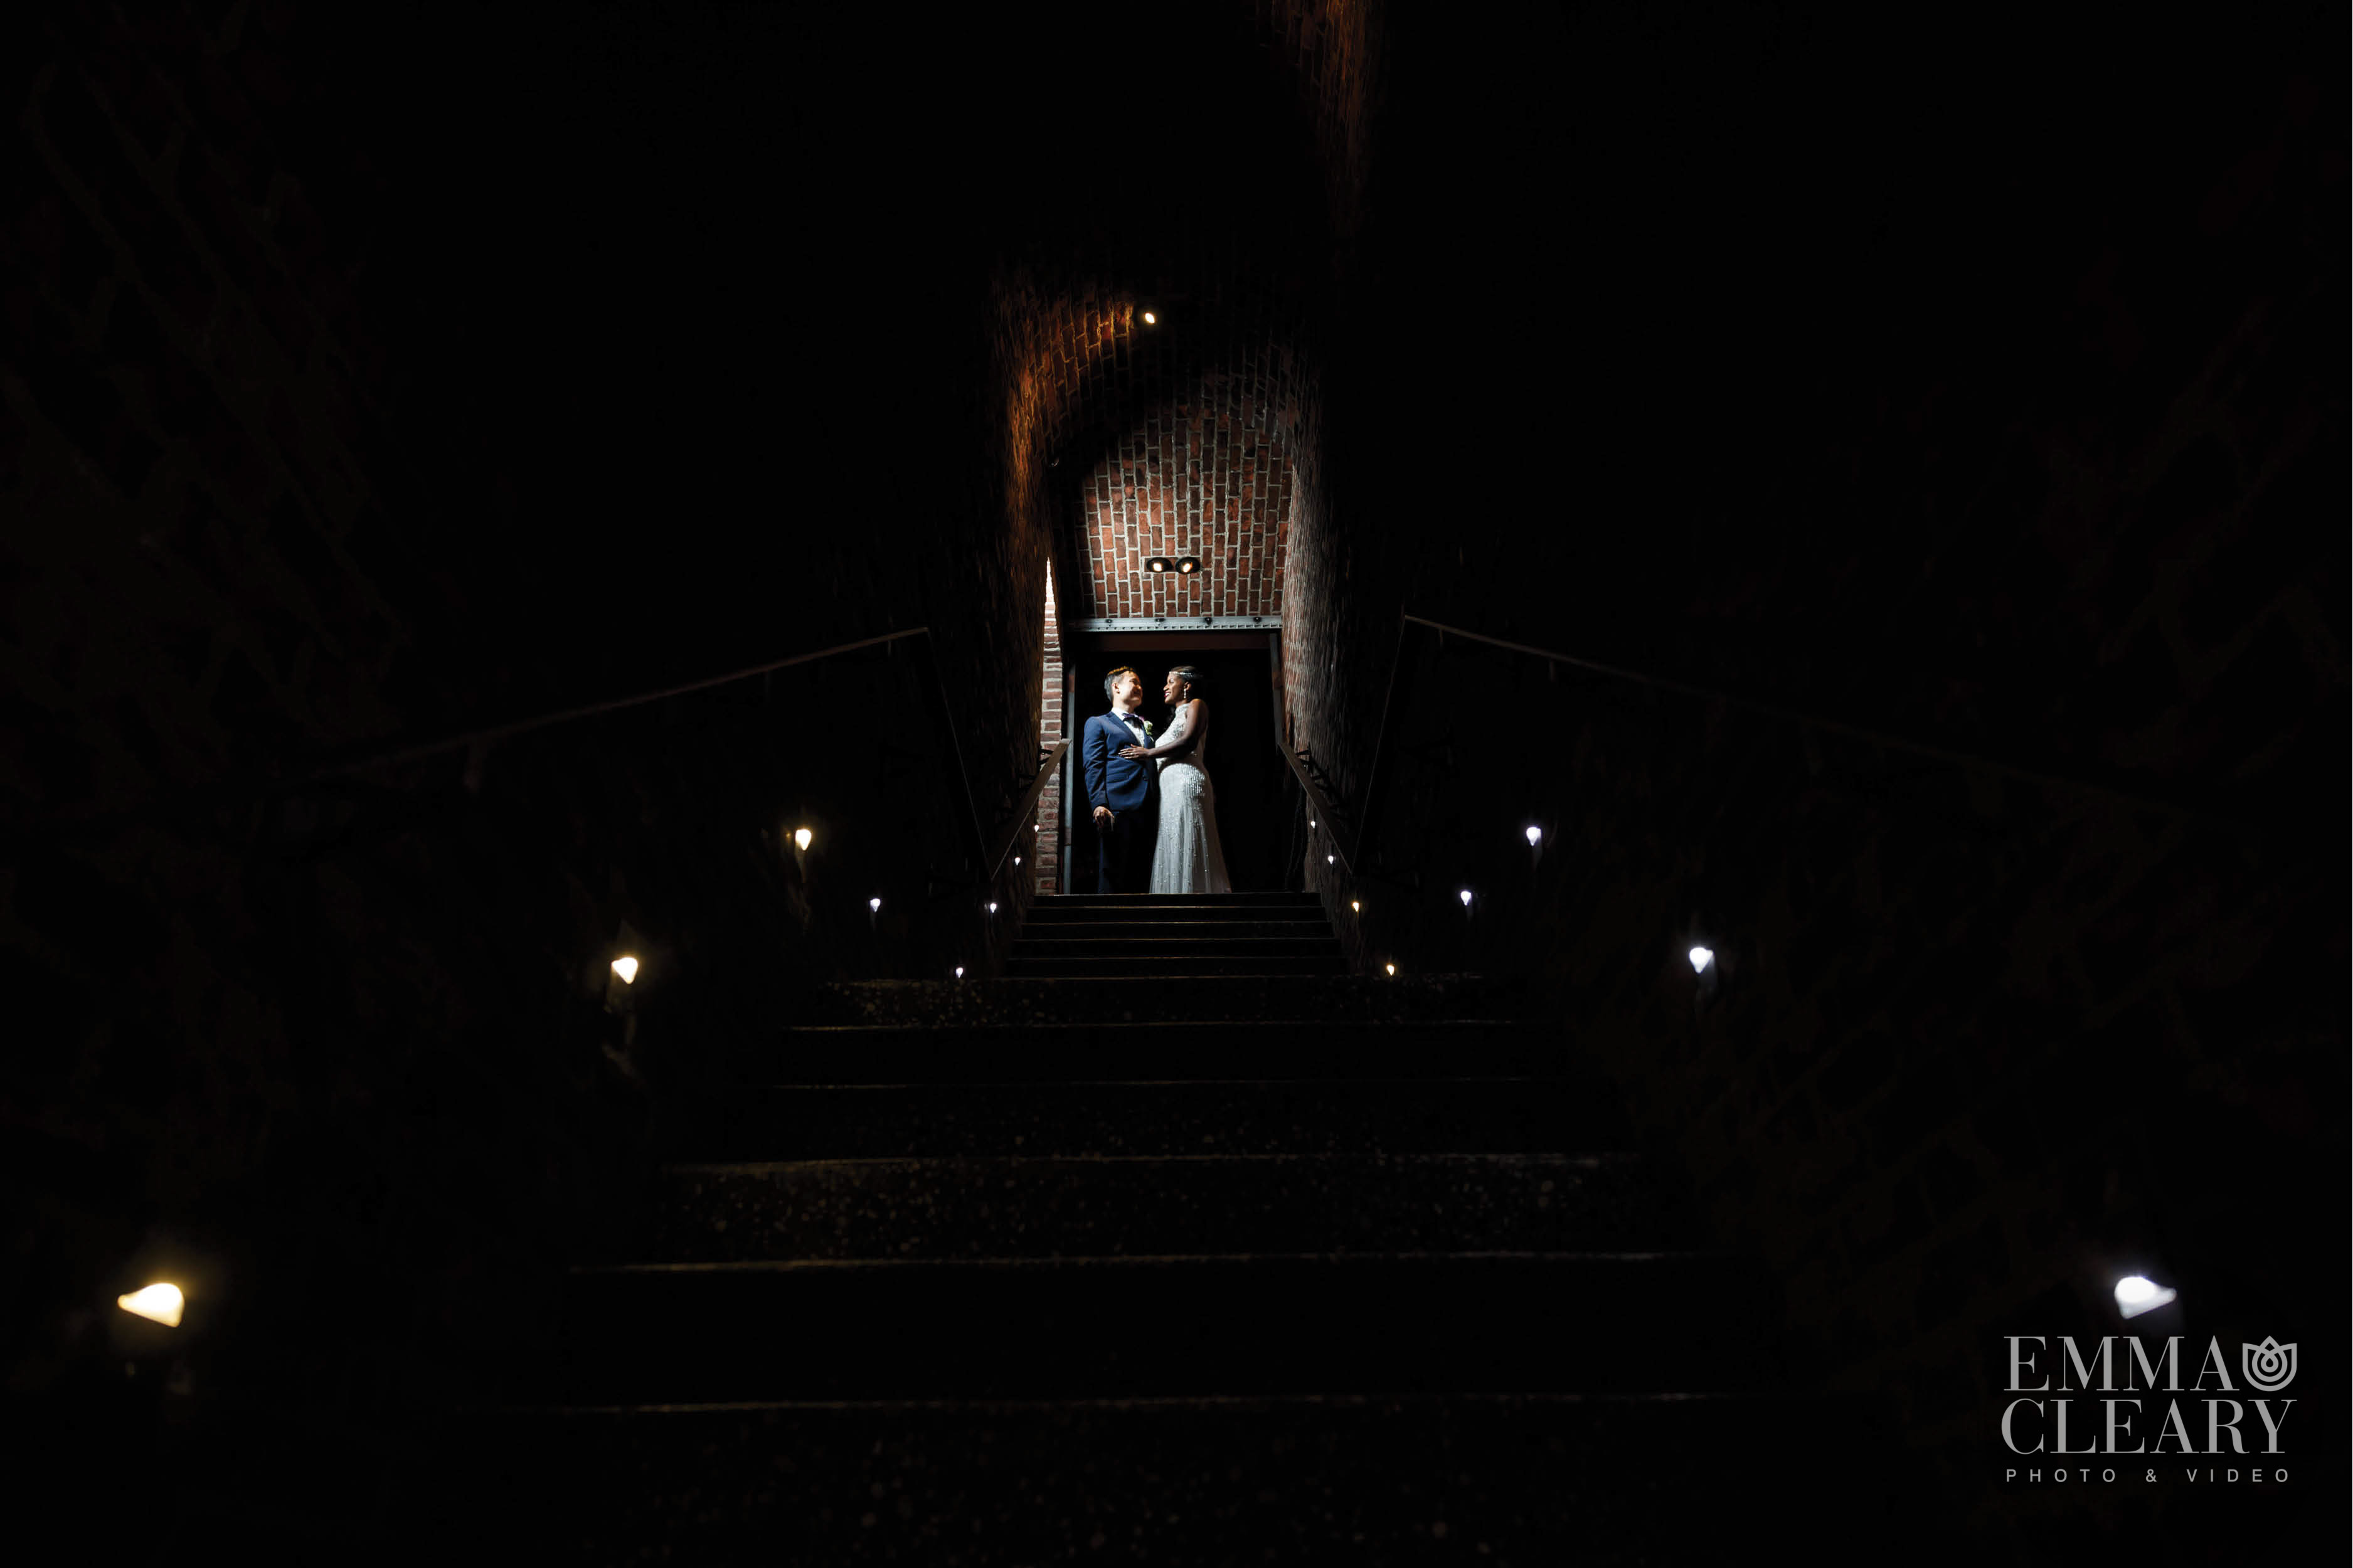 emma_cleary_photography-deity-wedding29